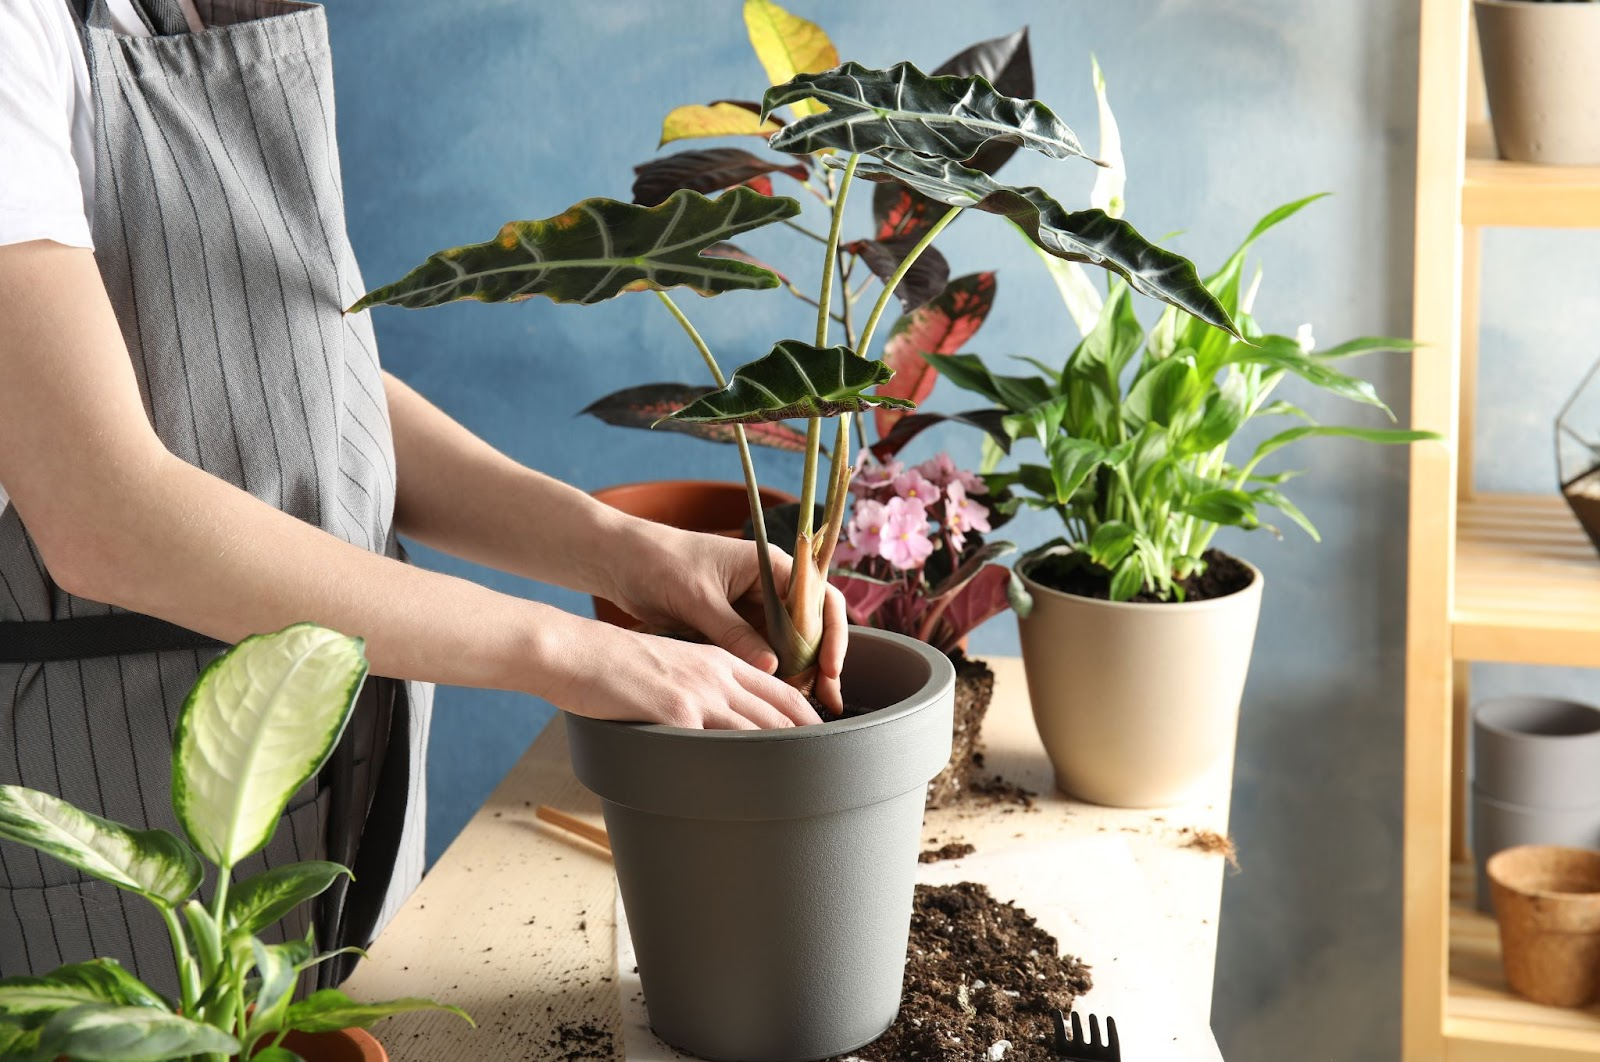 Person showing how to repot a plant by taking out old potting mix and placing new plant in pot.